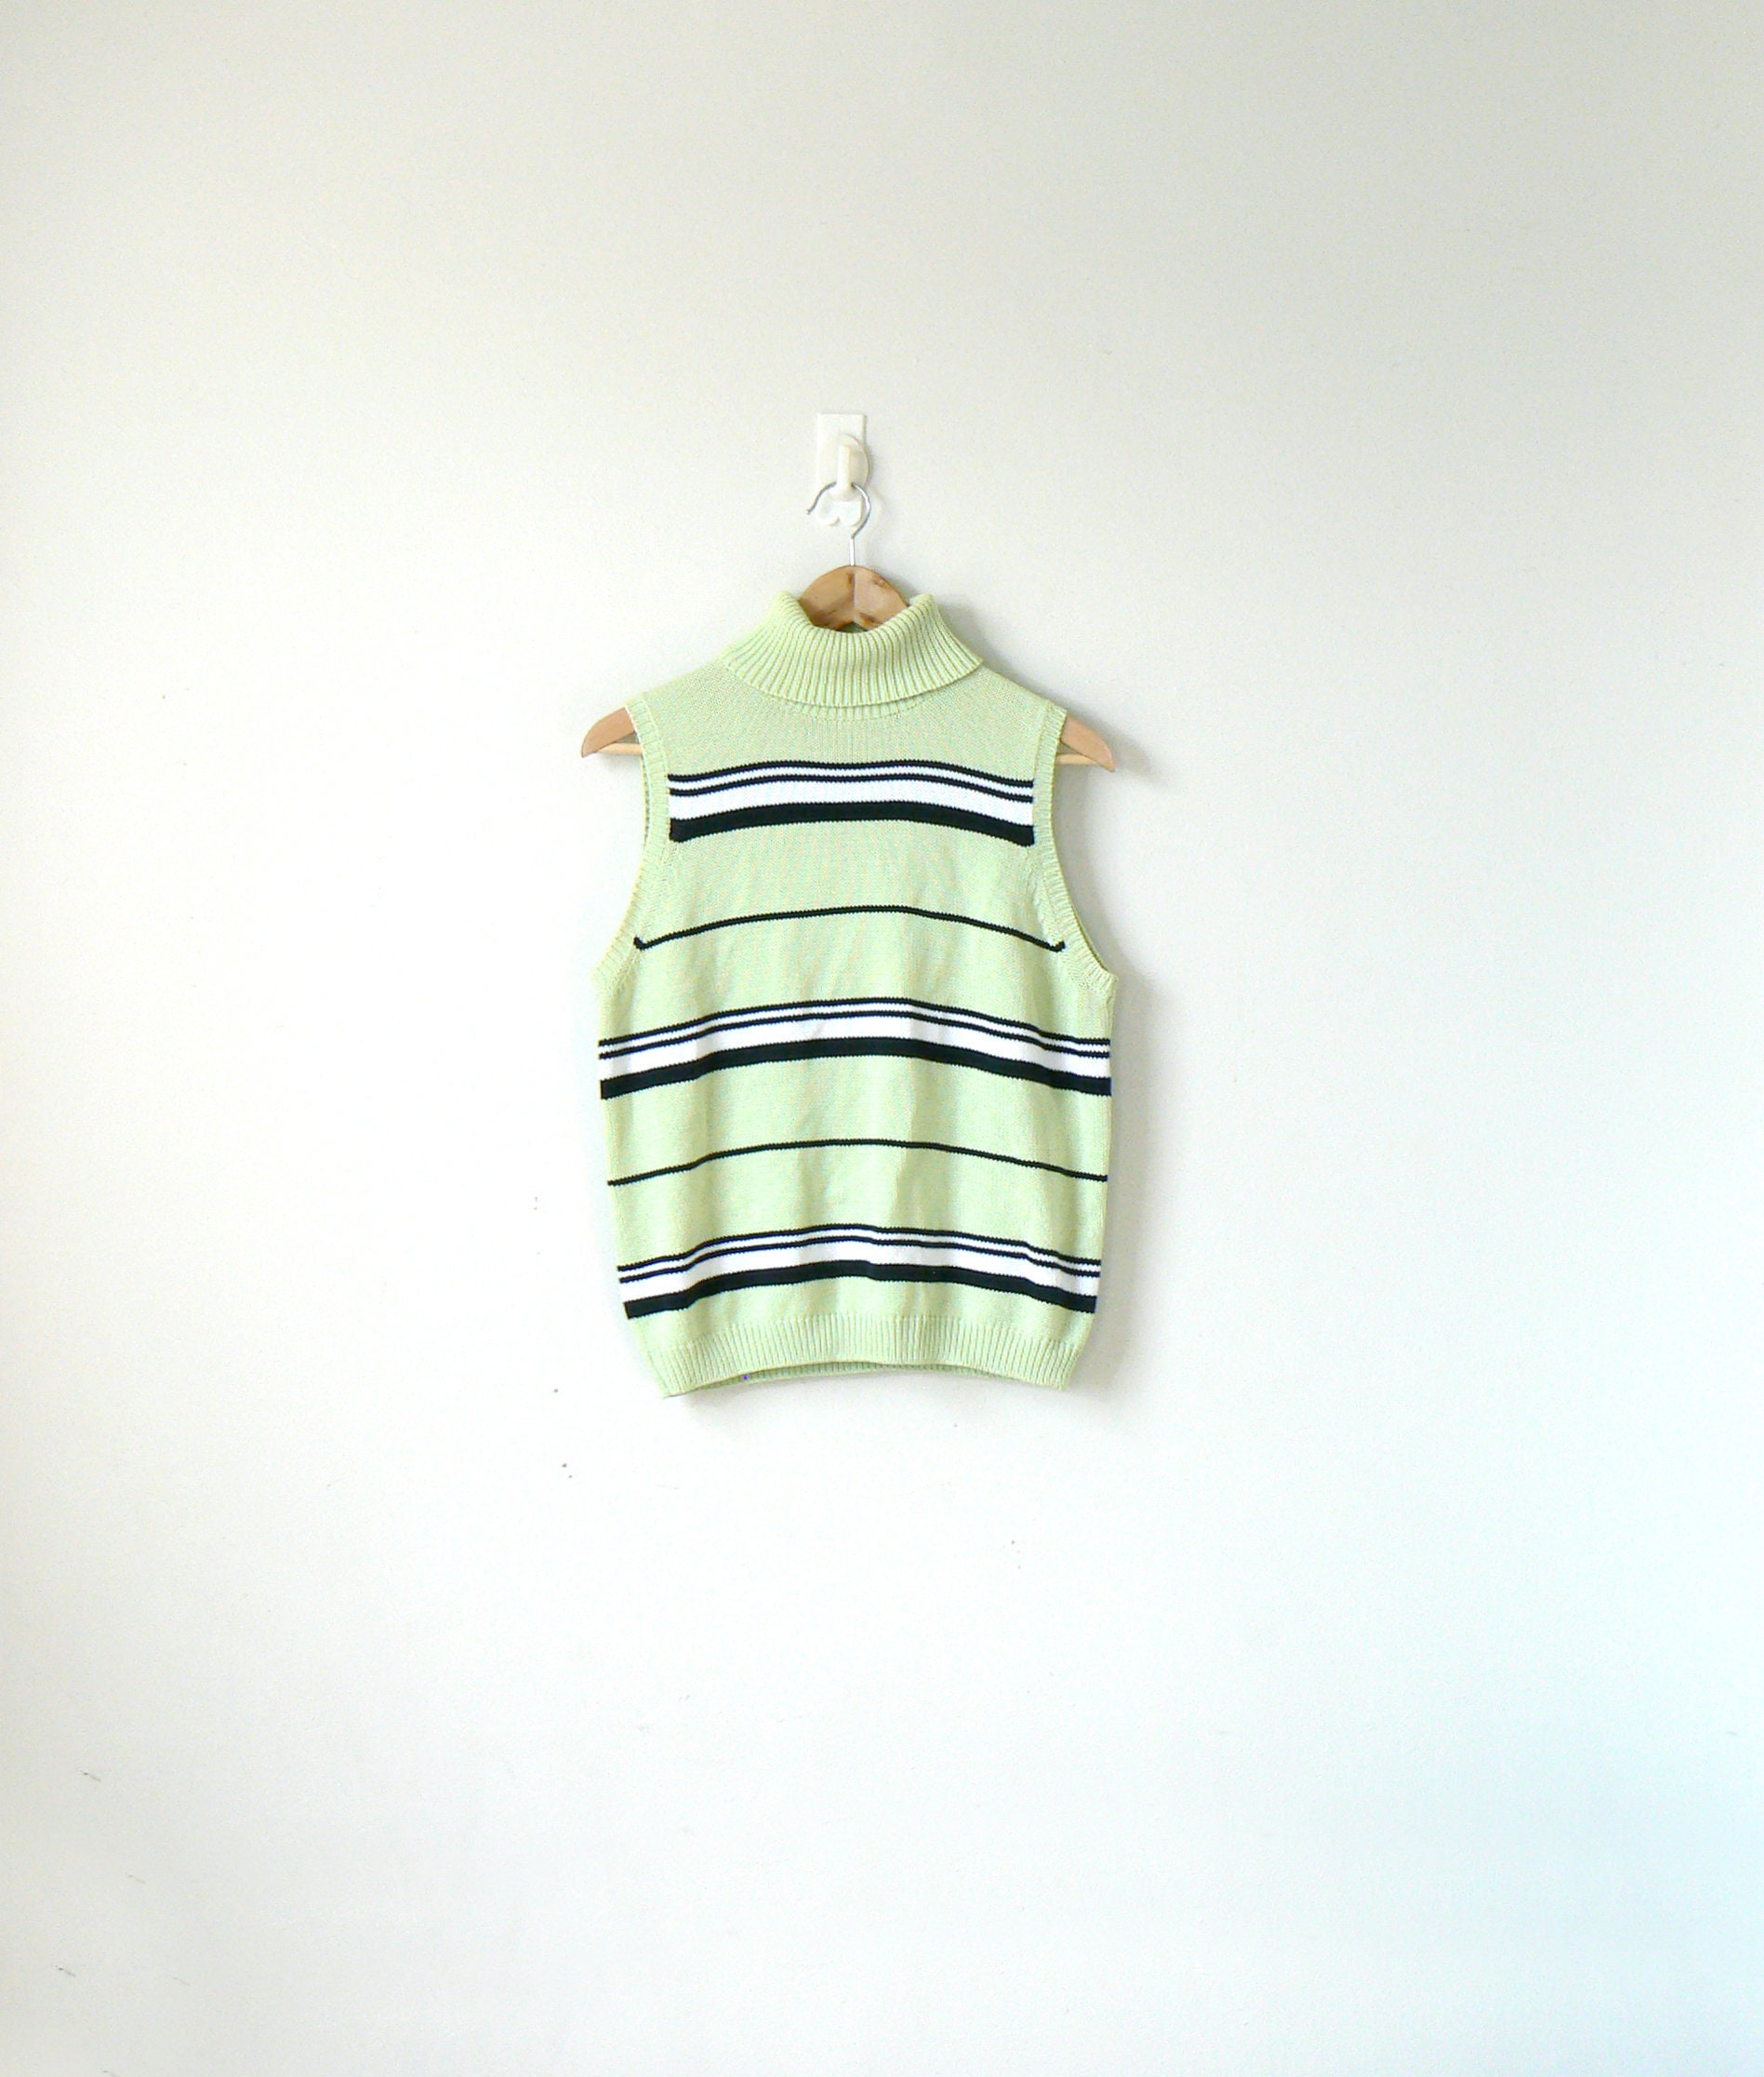 22a64d59726d 90s Pastel Green Striped Turtleneck Sweater 90s Pastel